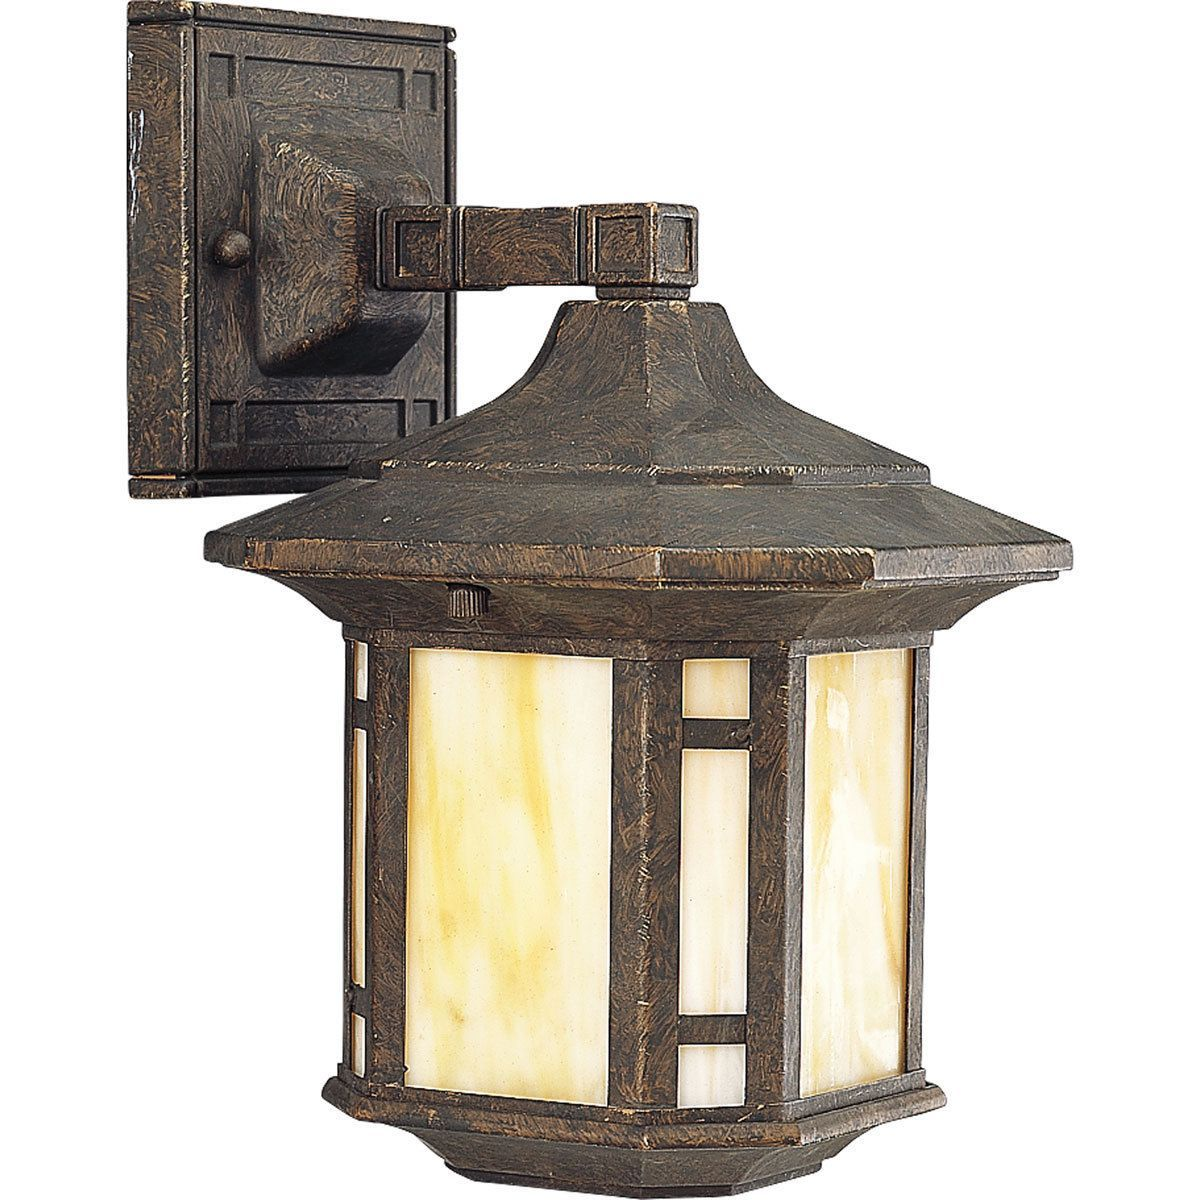 Progress Lighting Outdoor Wall Sconce Progress lighting p5628 46 arts and crafts 1 light wall lantern progress lighting p5628 46 arts and crafts 1 light wall lantern weathered bronze workwithnaturefo